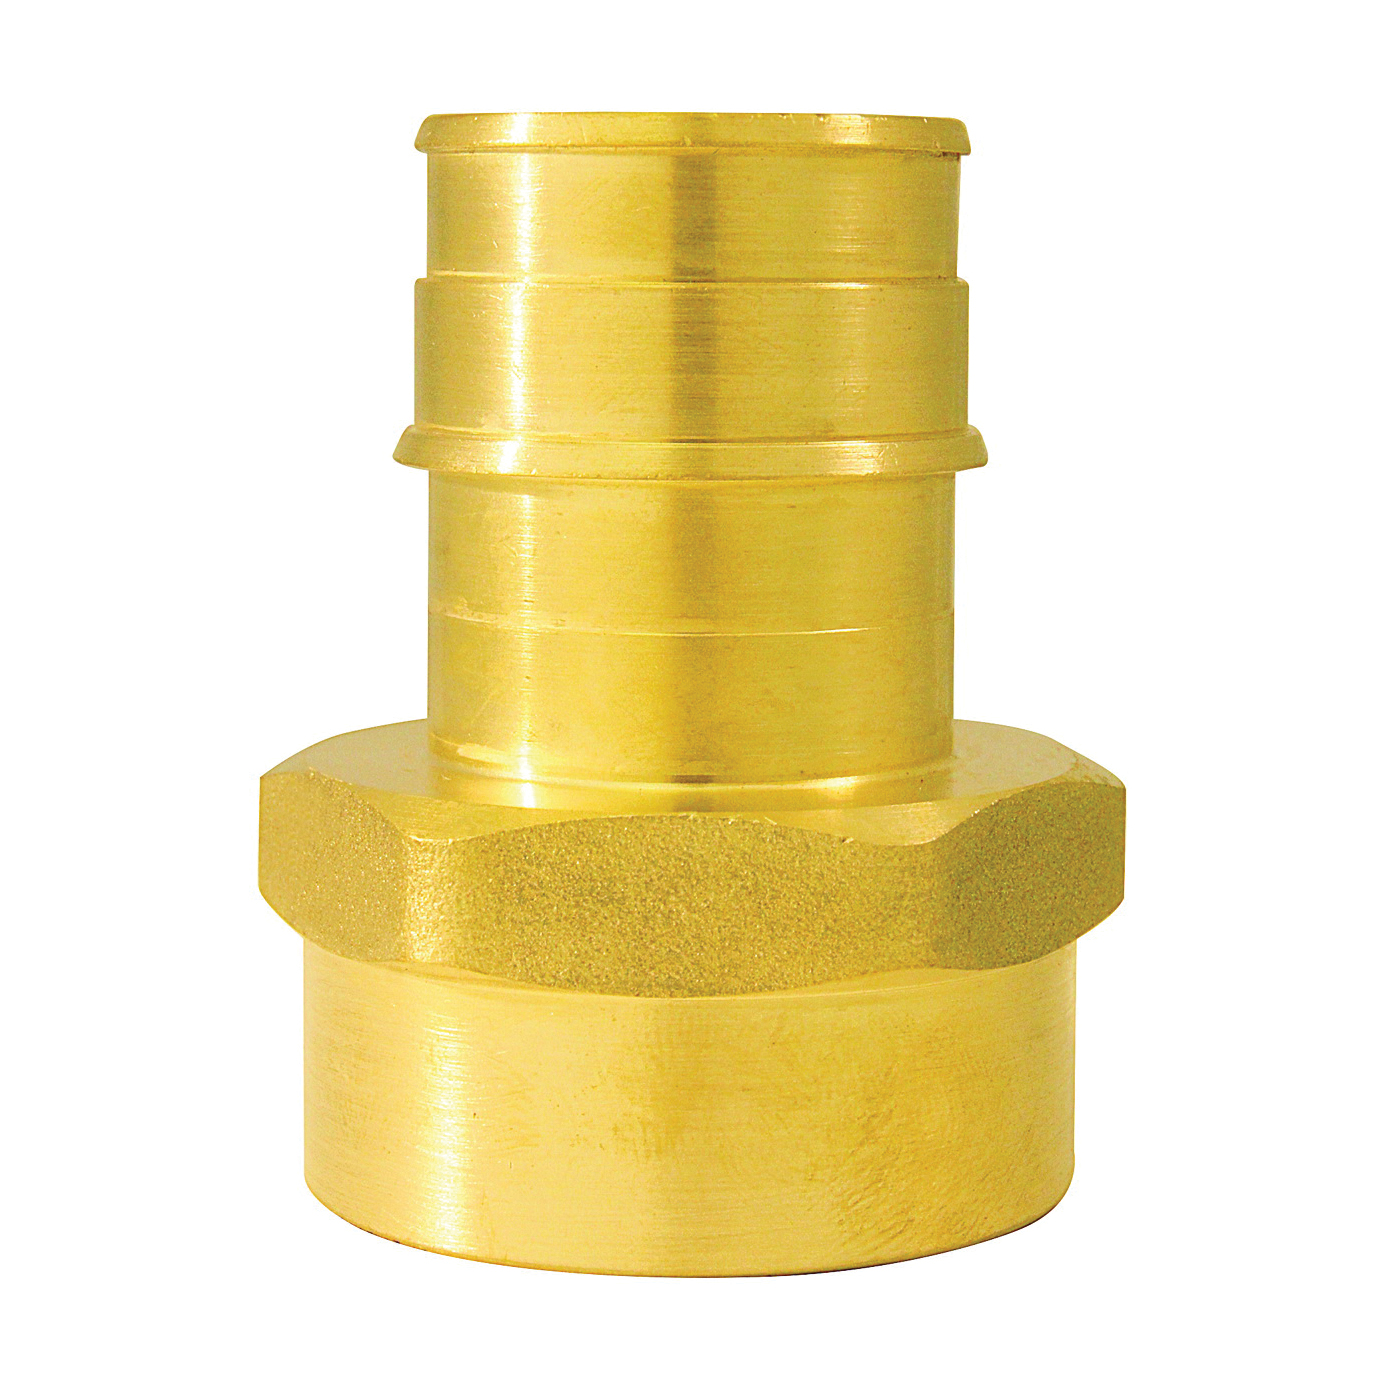 Picture of Apollo ExpansionPEX EPXFA1 Pipe Adapter, 1 in, Barb x FPT, Brass, 200 psi Pressure